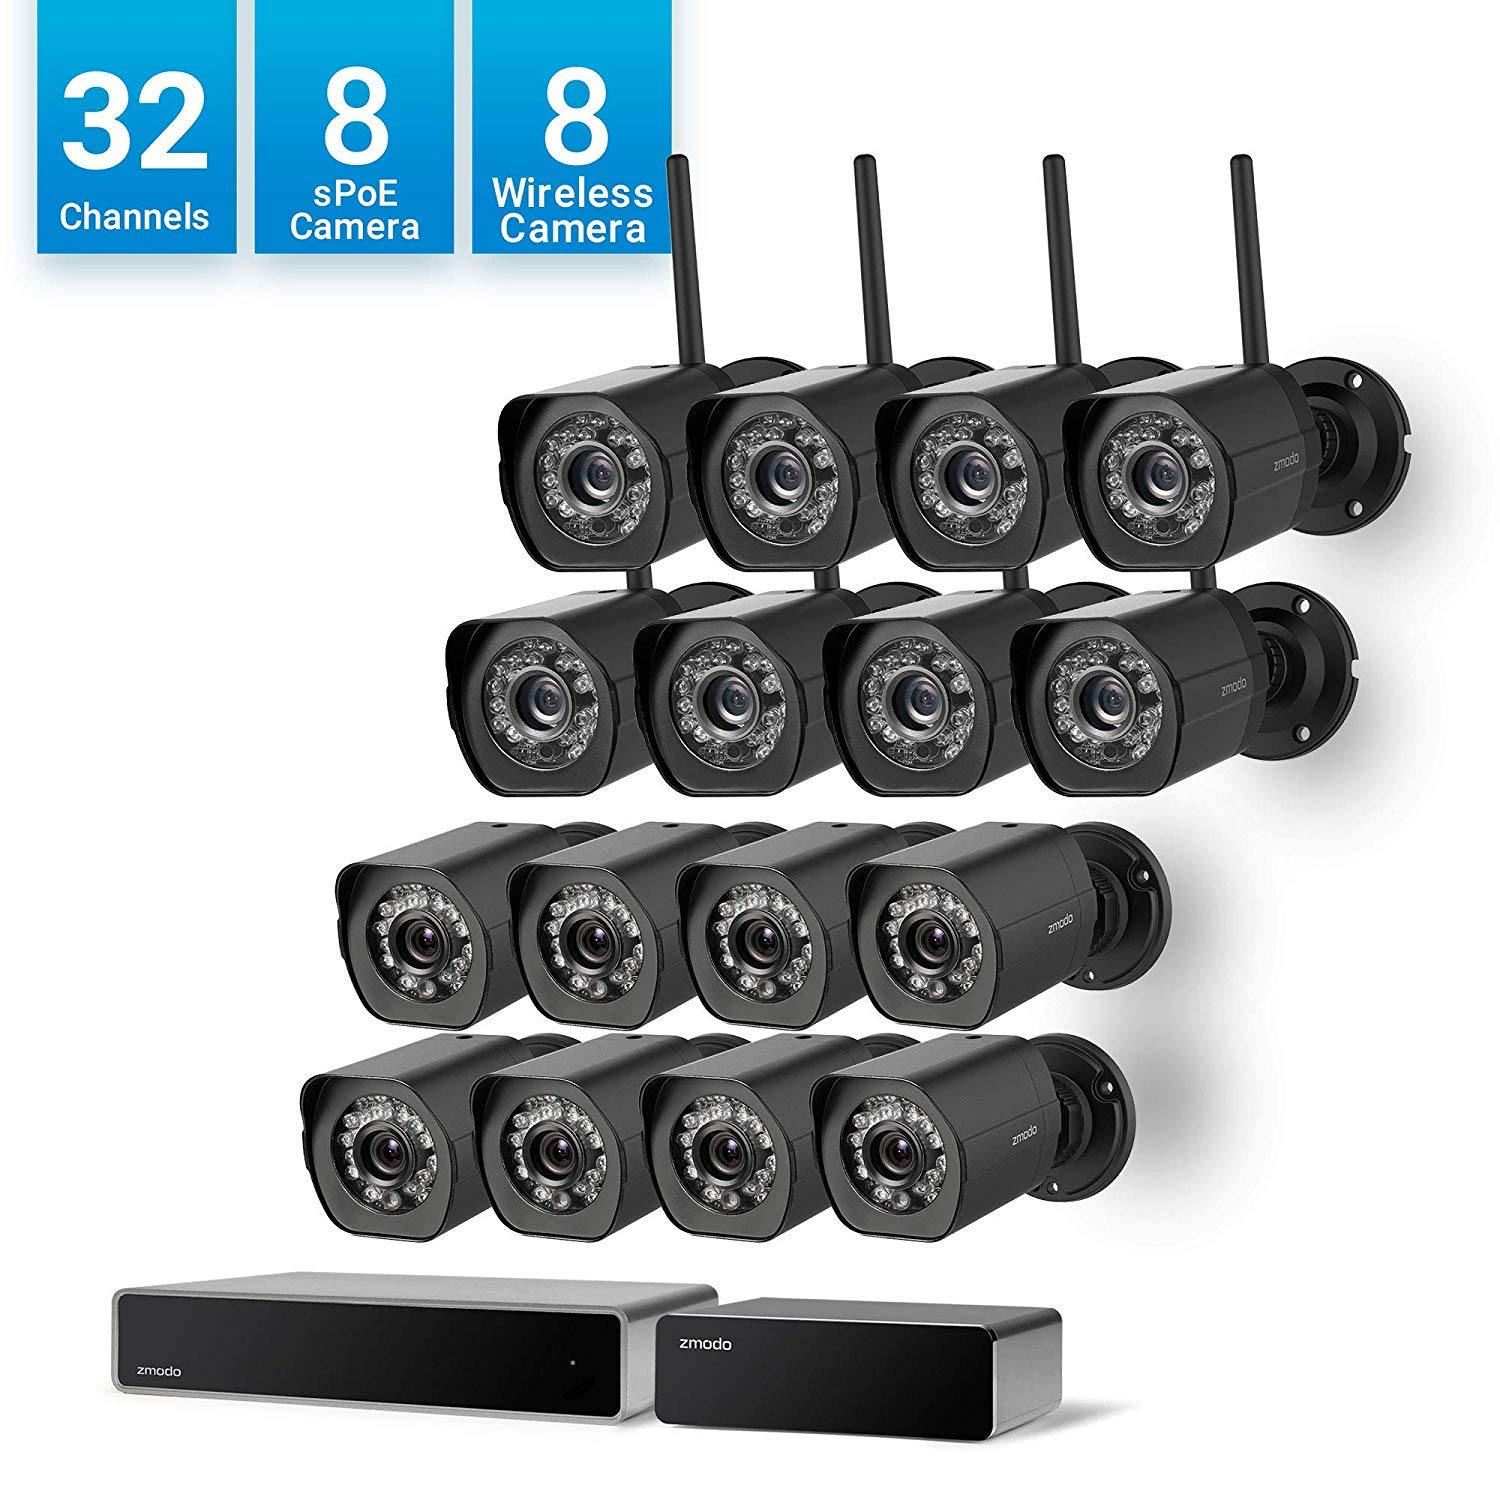 Zmodo 32 Channel 1080p HDMI NVR 8 Simplified PoE Camera 8 Wireless Camera Outdoor 720p HD Security System,24 7 Recording Remote Monitoring, w Repeater Flexible Installation